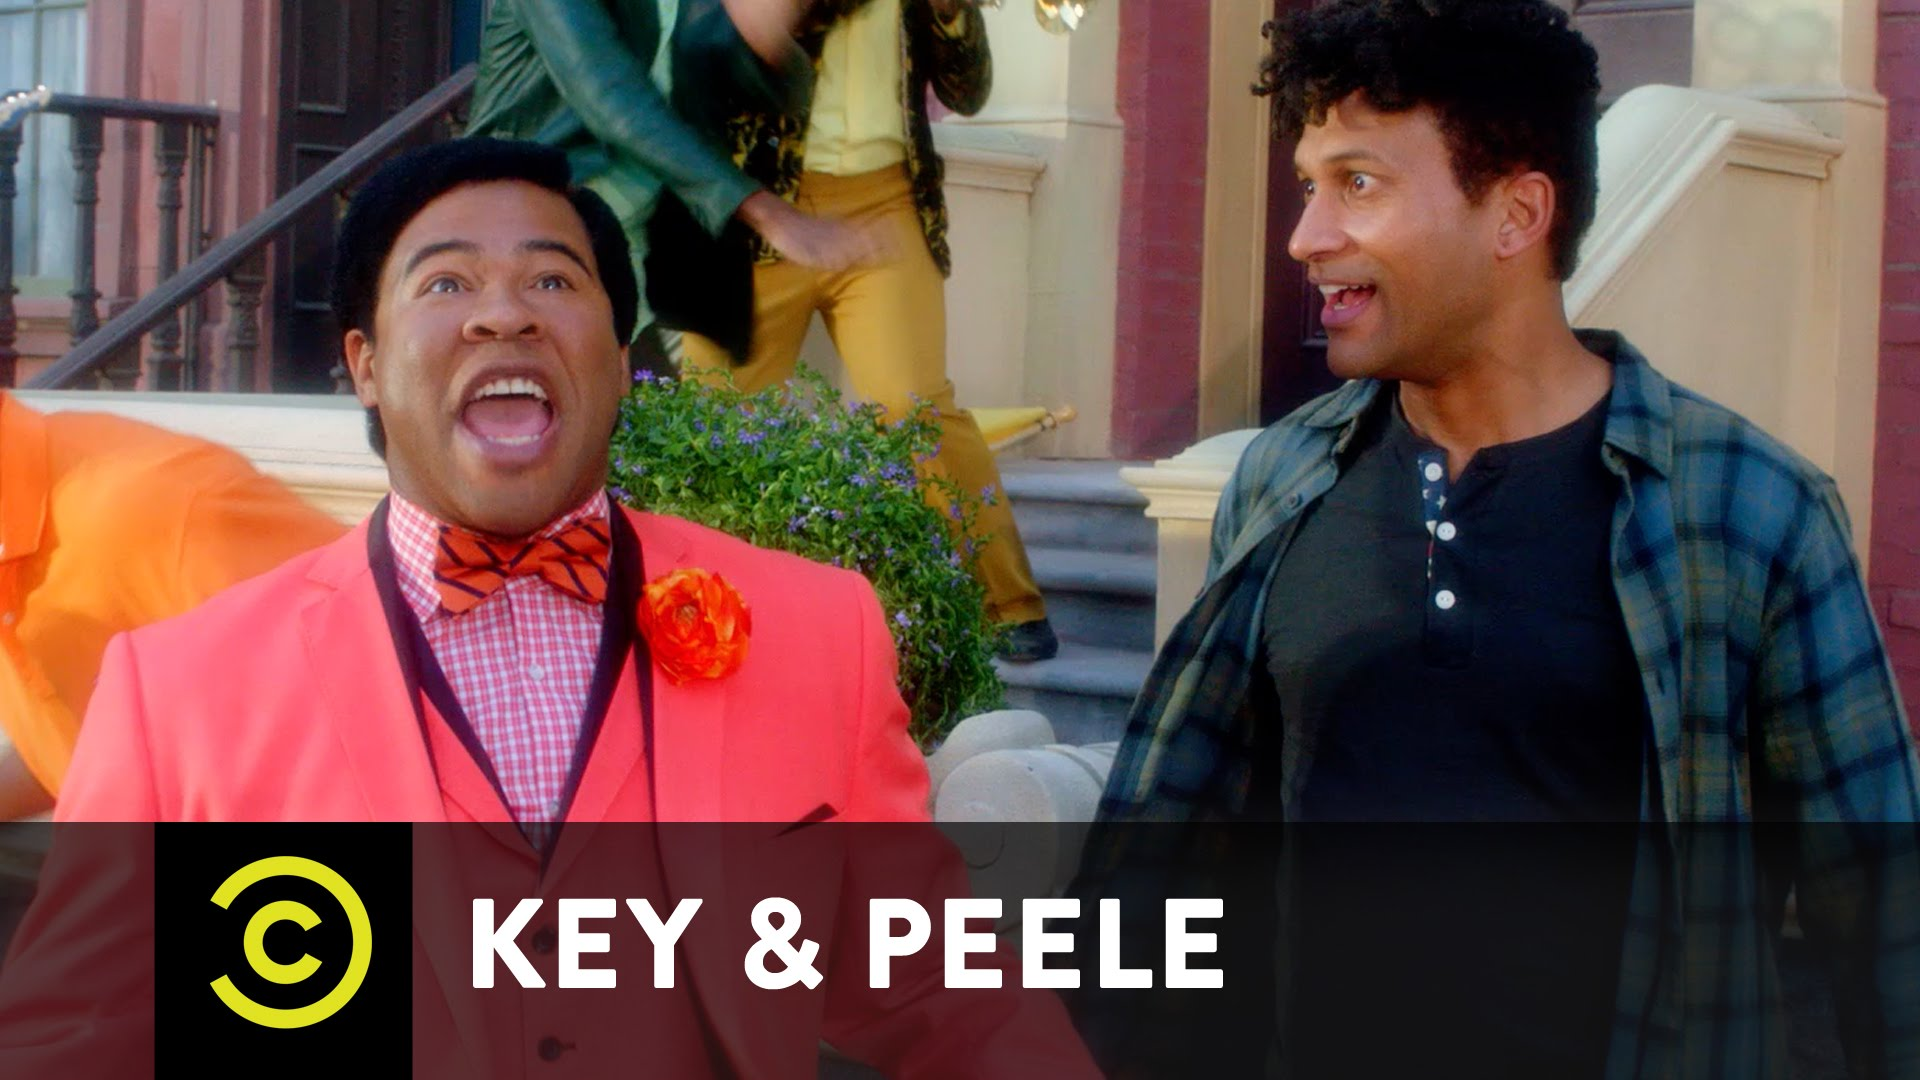 A Brutally Funny New Video From Key & Peele: Negrotown